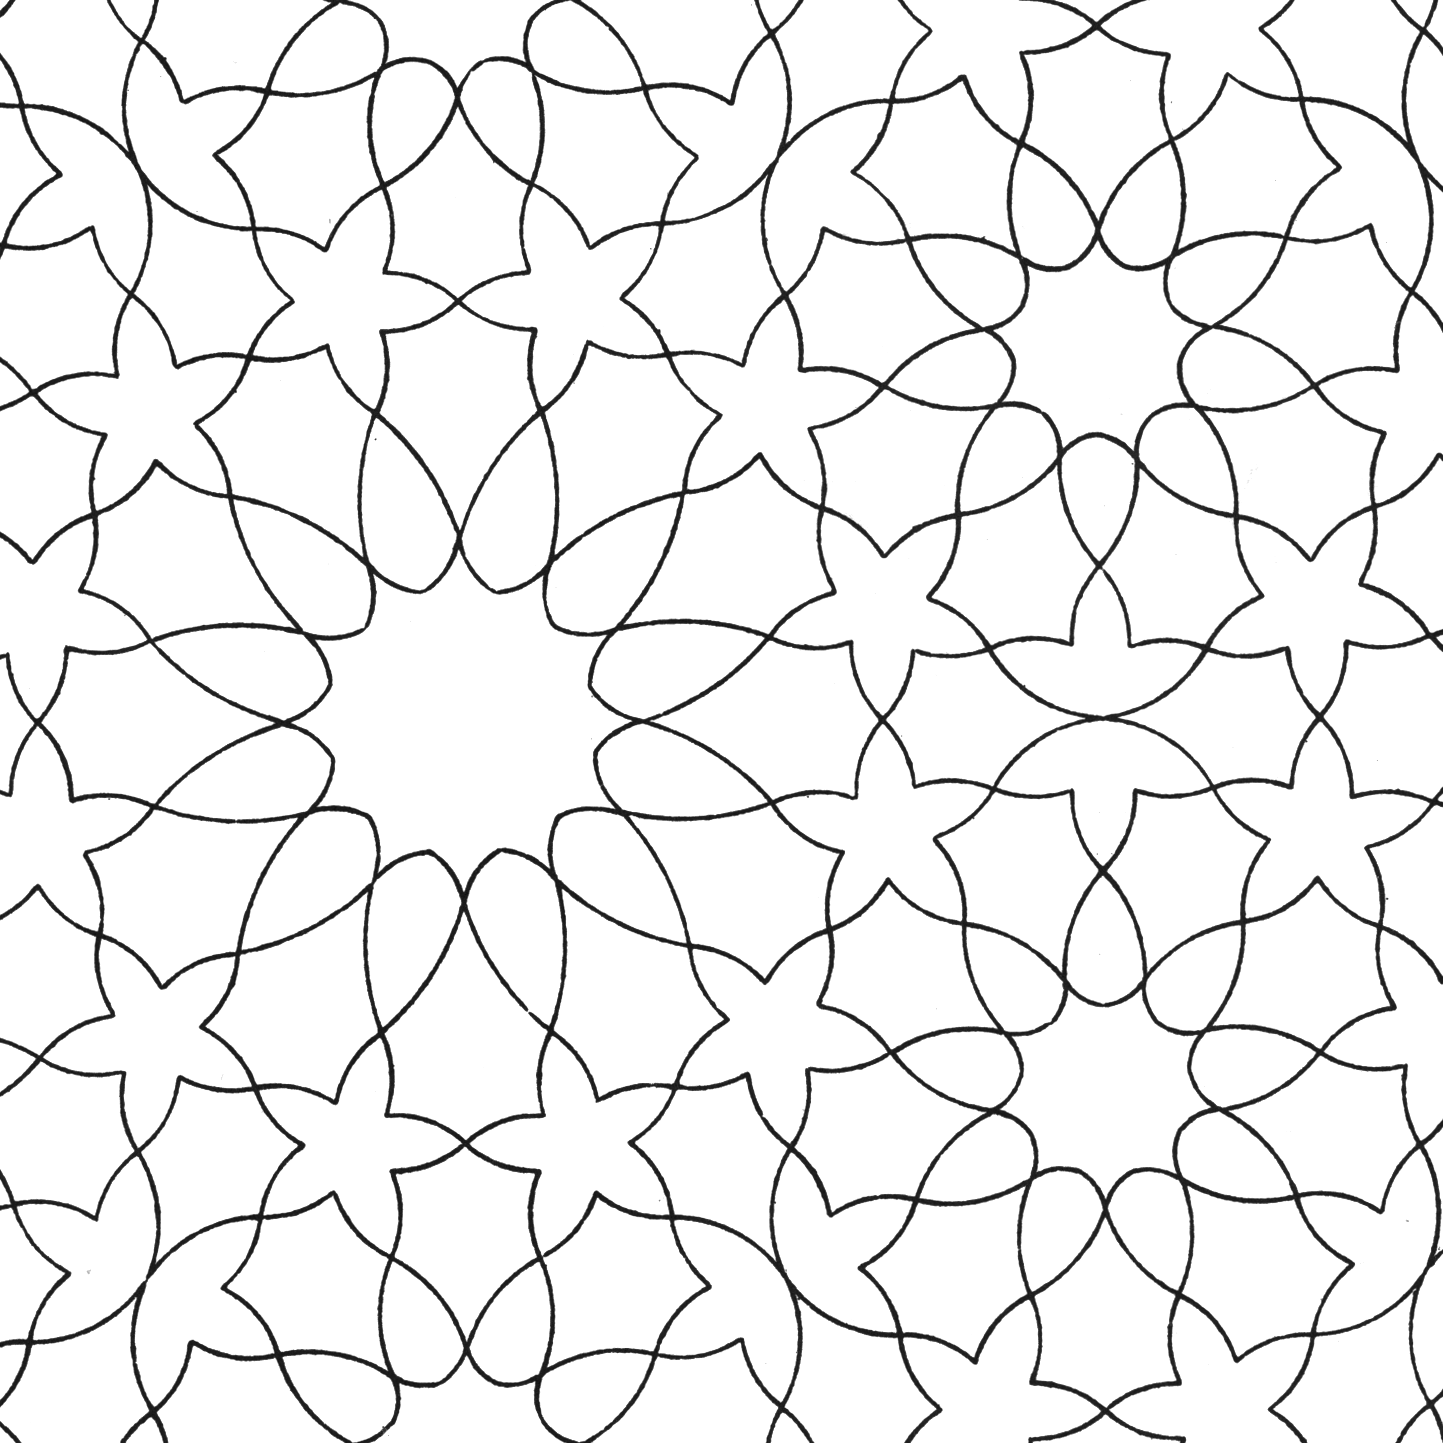 1443x1443 Hd Images Of Pin Islamic Patterns Colouring Sheets